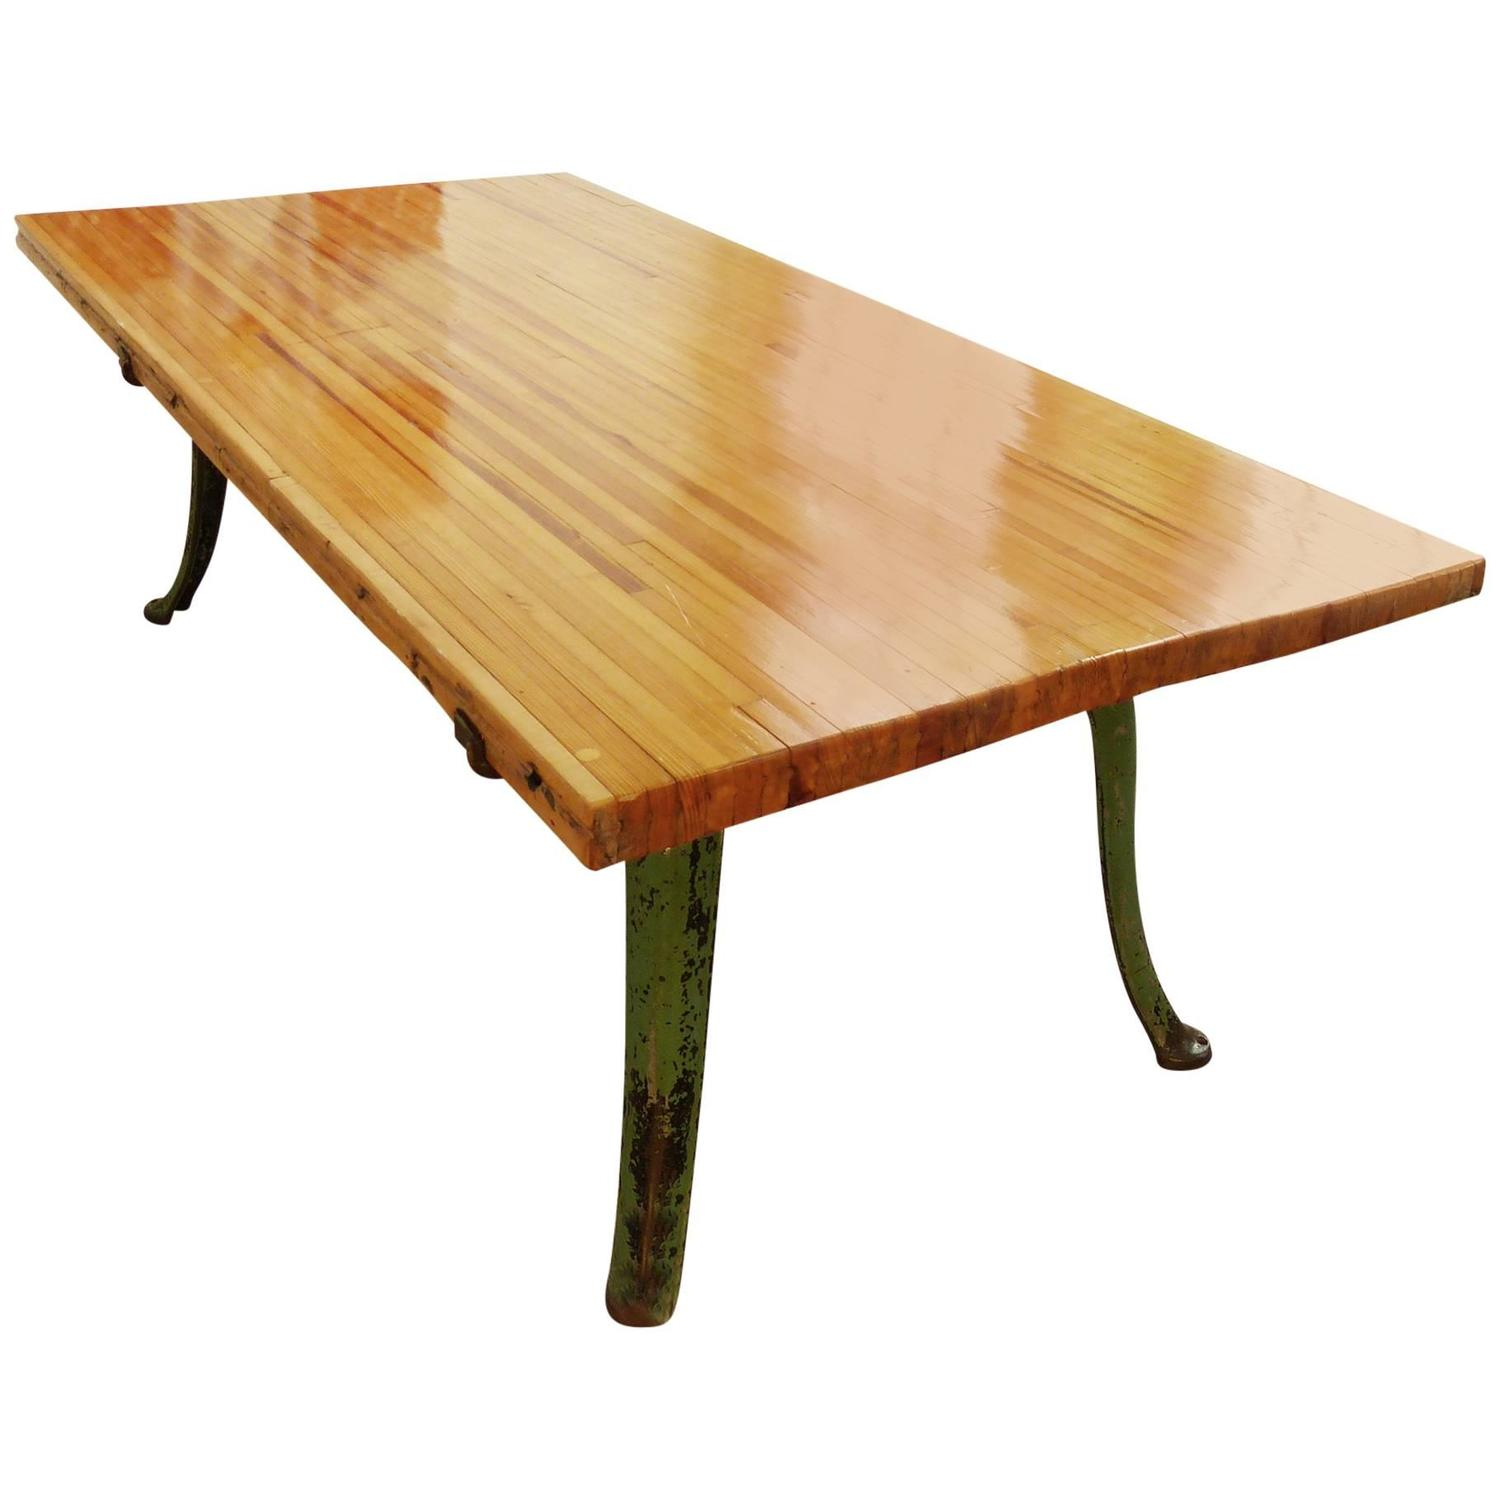 Dining table with cast iron legs and reclaimed wood for for Cast iron table legs for sale